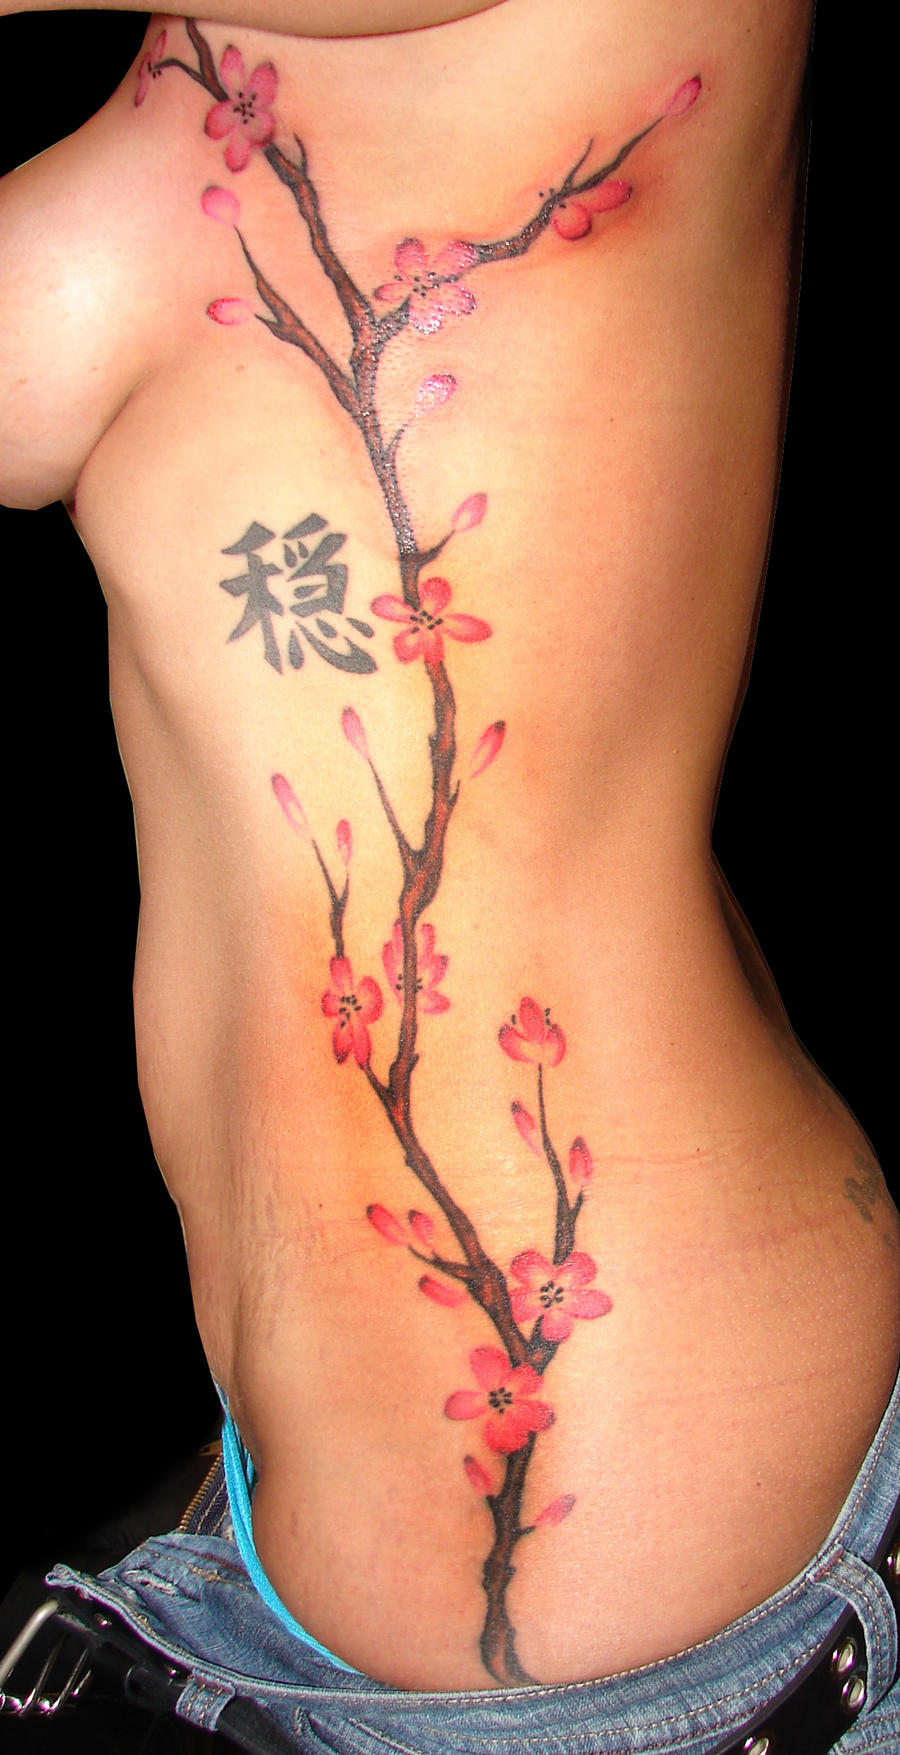 Another Cherry Blossom tattoo by asussman